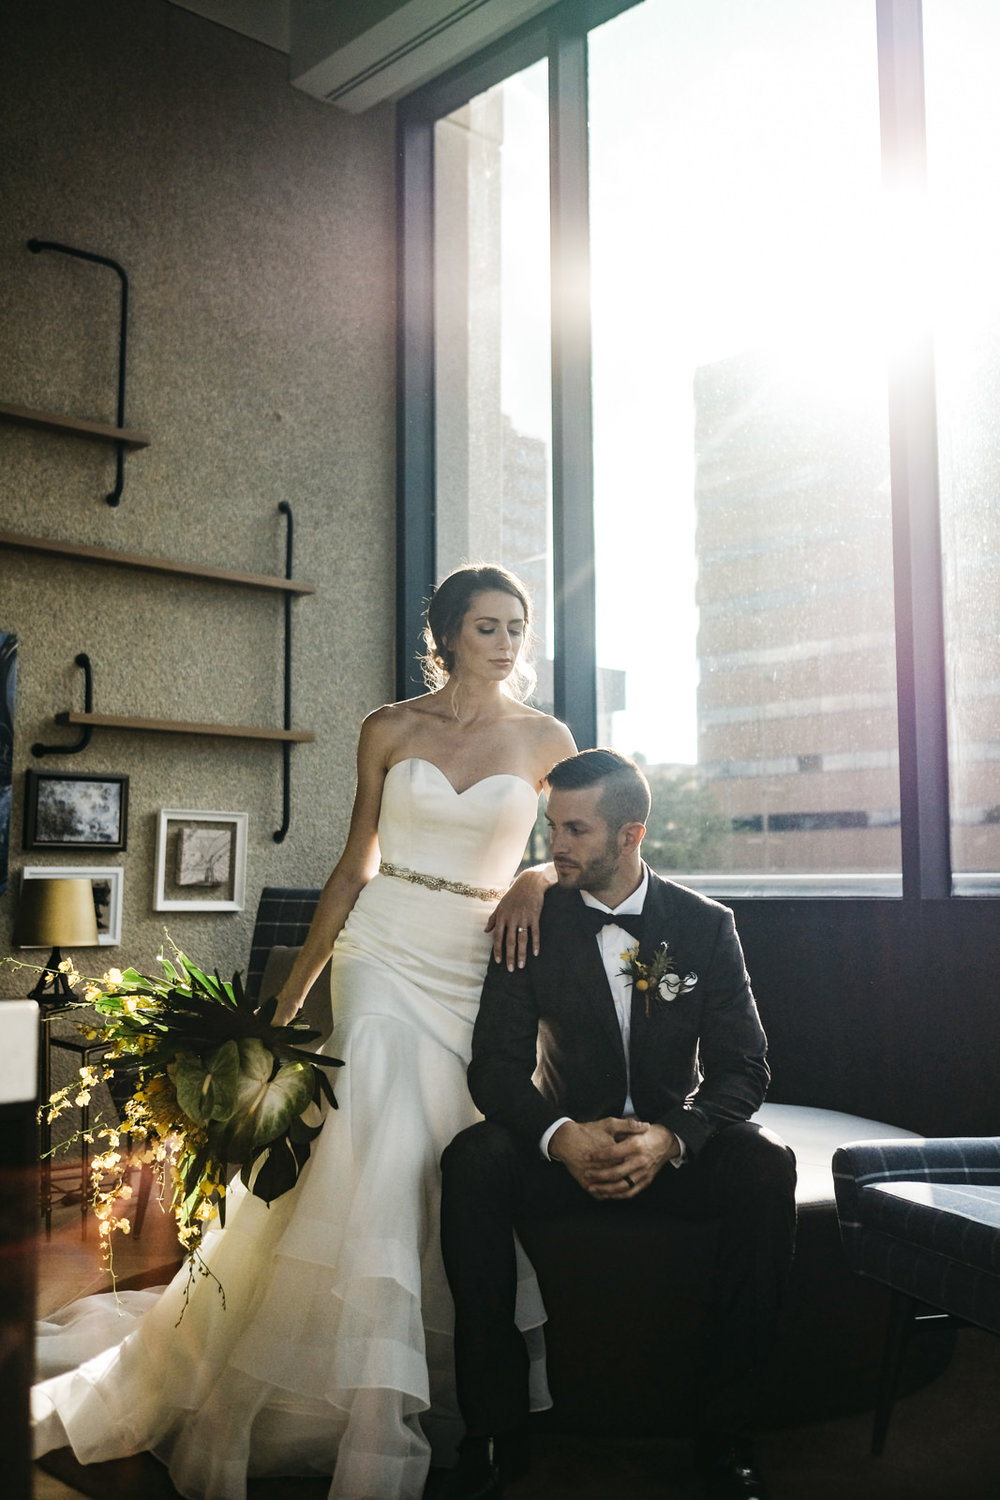 Bride and groom at a Renaissance Hotel wedding styled shoot.